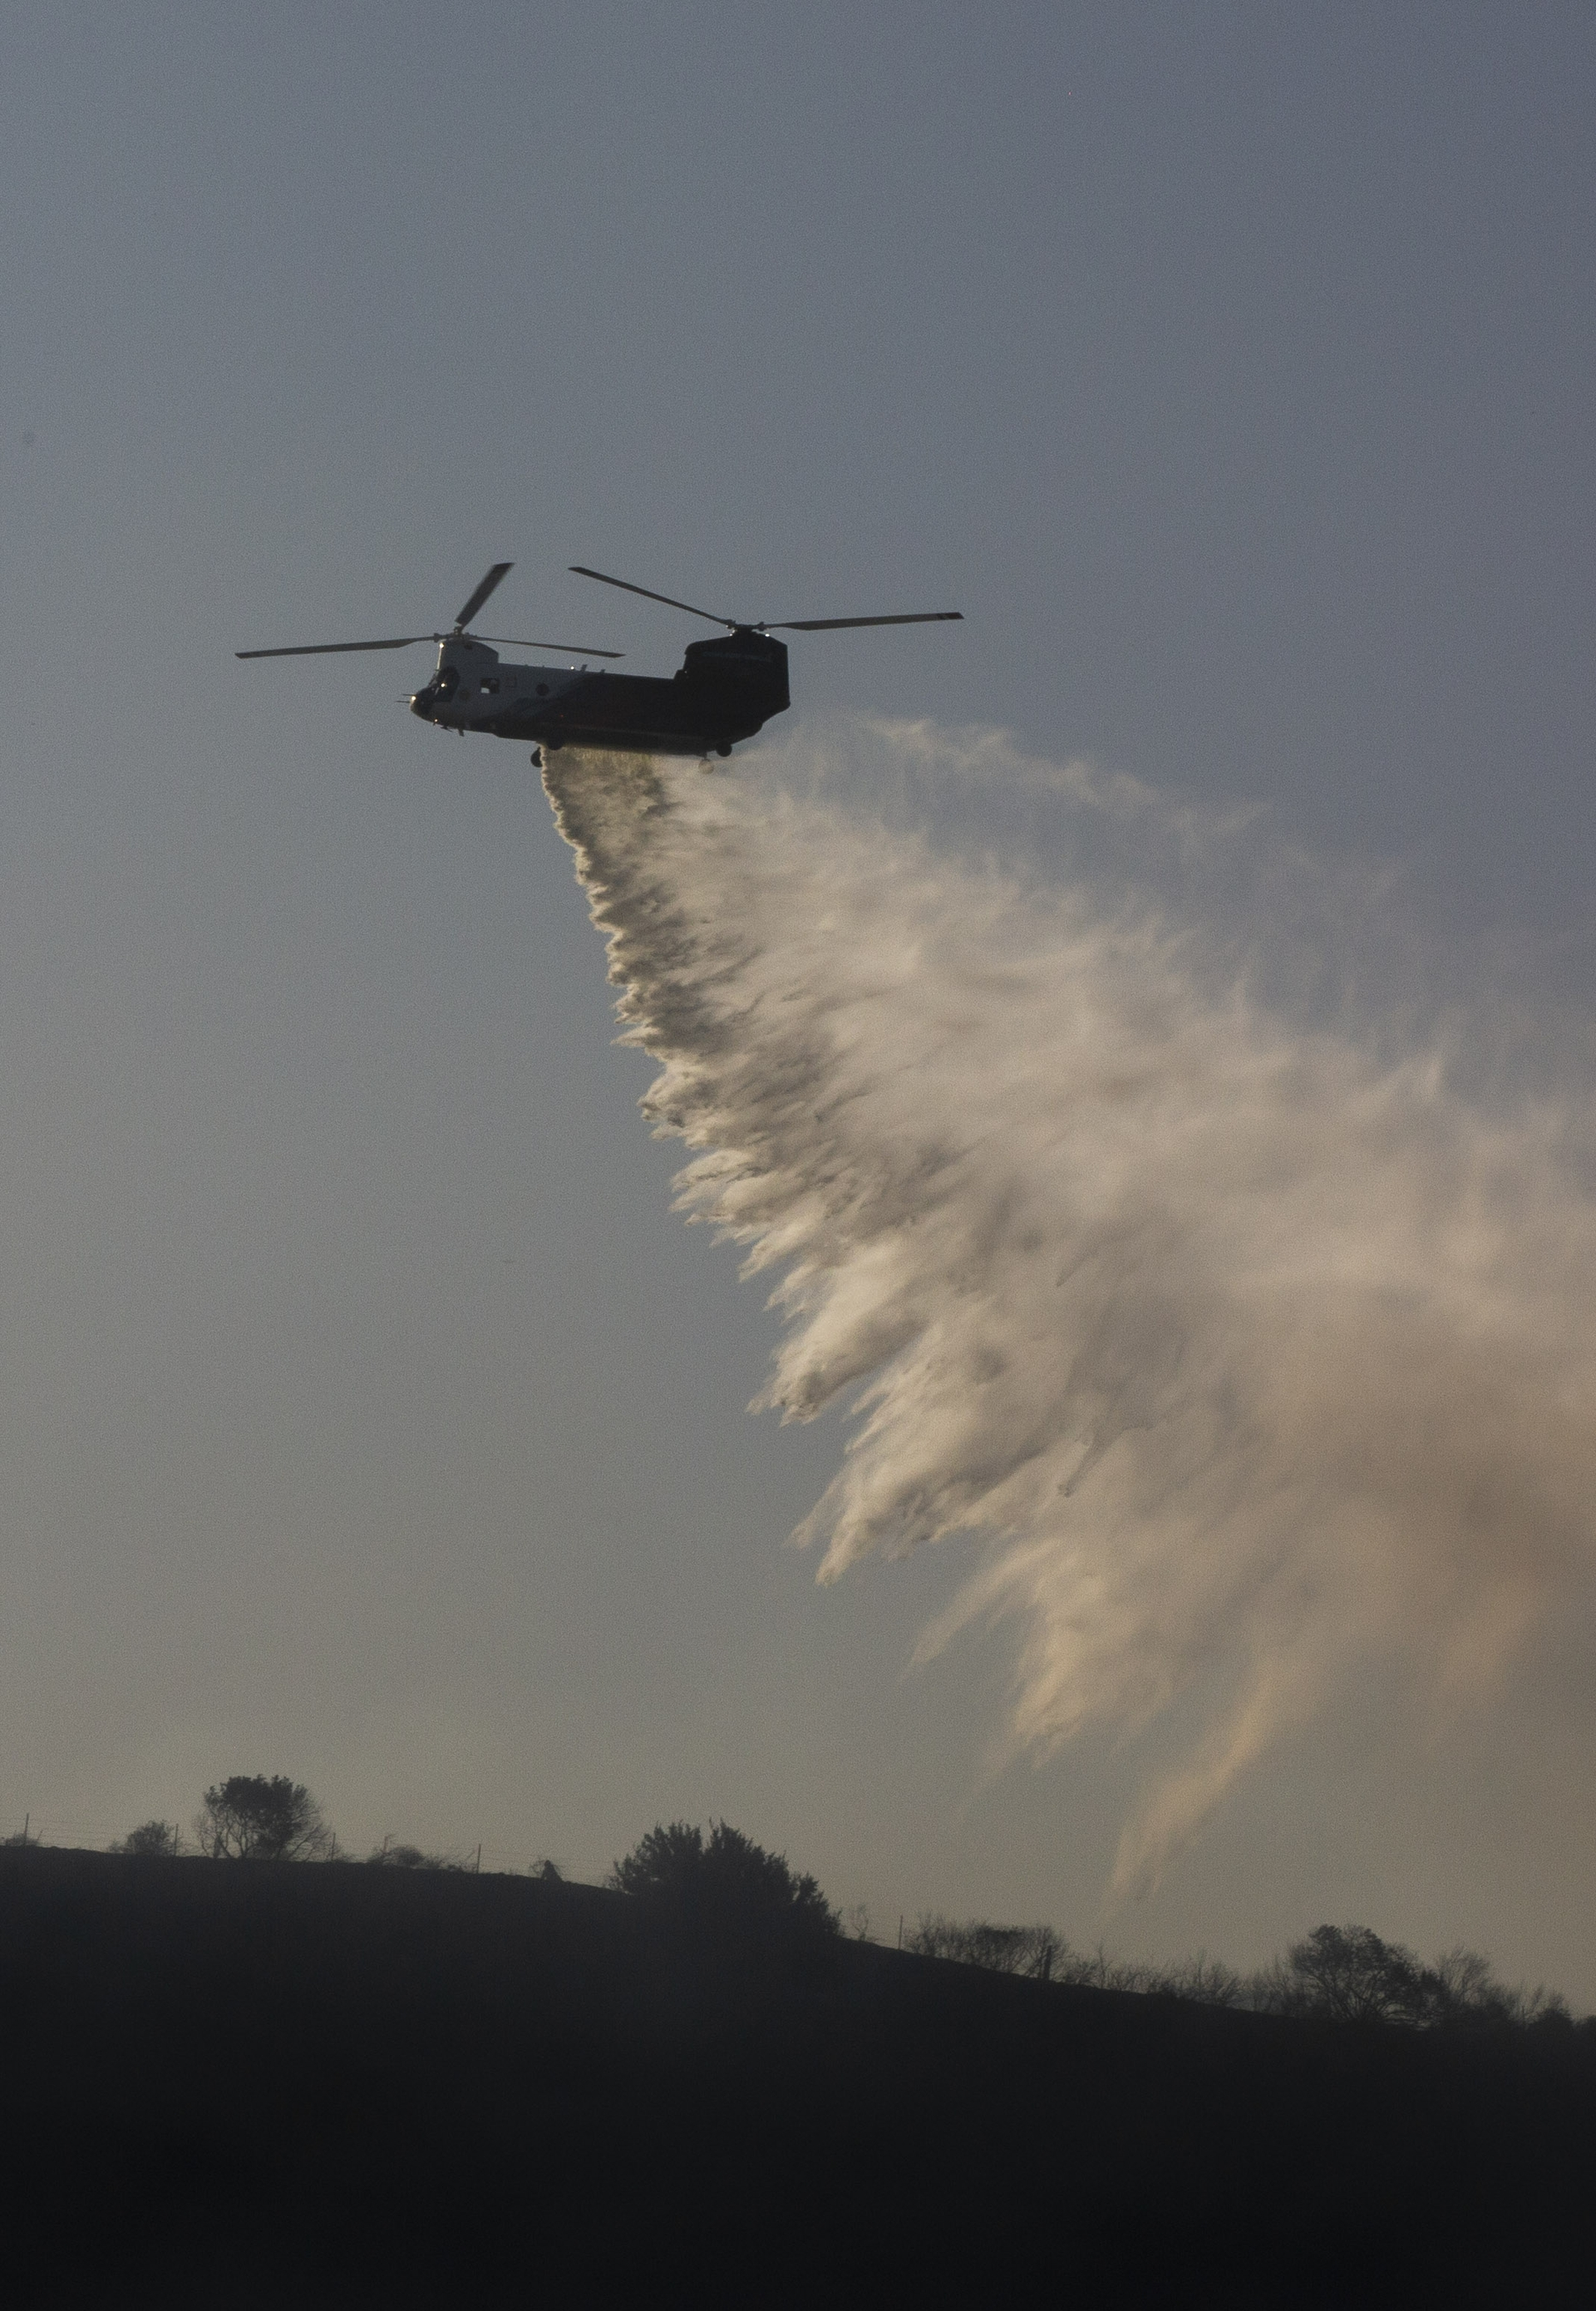 The Coulson-Unical CH-47 helitanker used by OCFA can drop  3,000 gallons of water in a single pass.